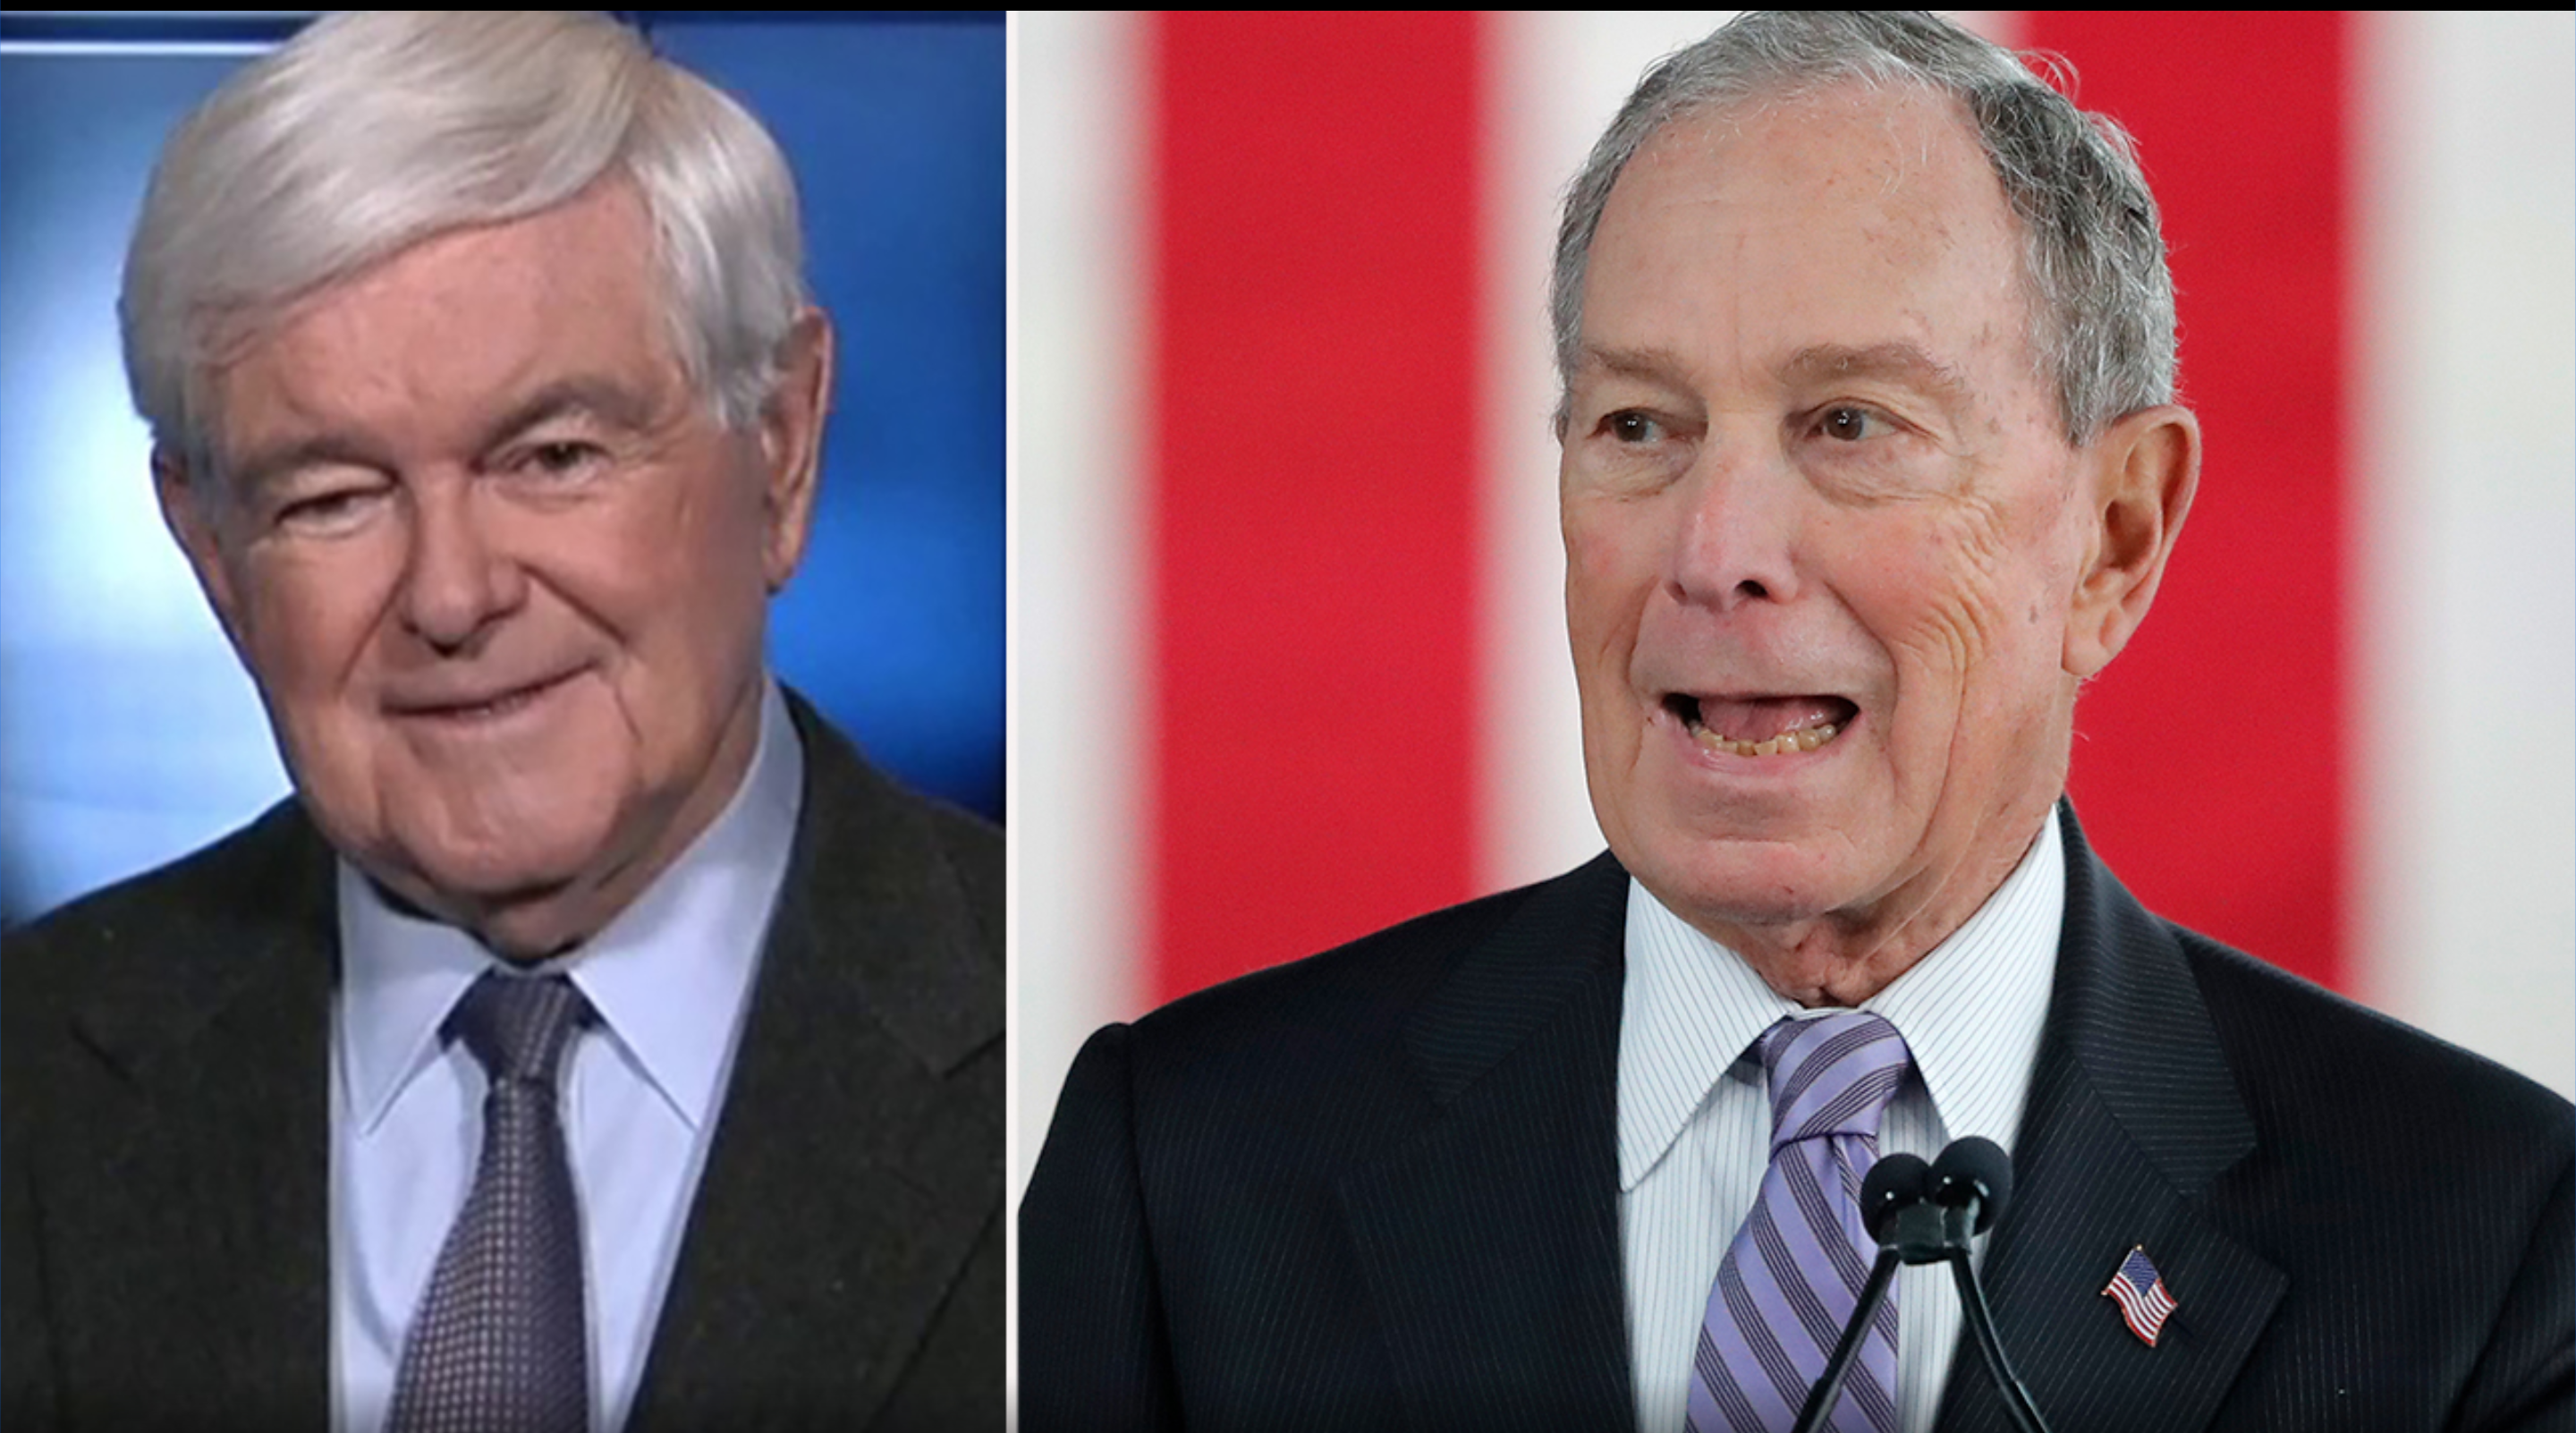 Westlake Legal Group Screen-Shot-2020-02-18-at-8.36.10-AM Gingrich says Mike Bloomberg could spend up to $6 billion 'carpet-bombing' states with ads Joshua Nelson fox-news/shows/fox-friends fox-news/politics/elections/democrats fox-news/politics/2020-presidential-election fox-news/person/michael-bloomberg fox-news/media/fox-news-flash fox news fnc/media fnc article 0c56482c-75d1-575d-8150-88b1f73fcf8e